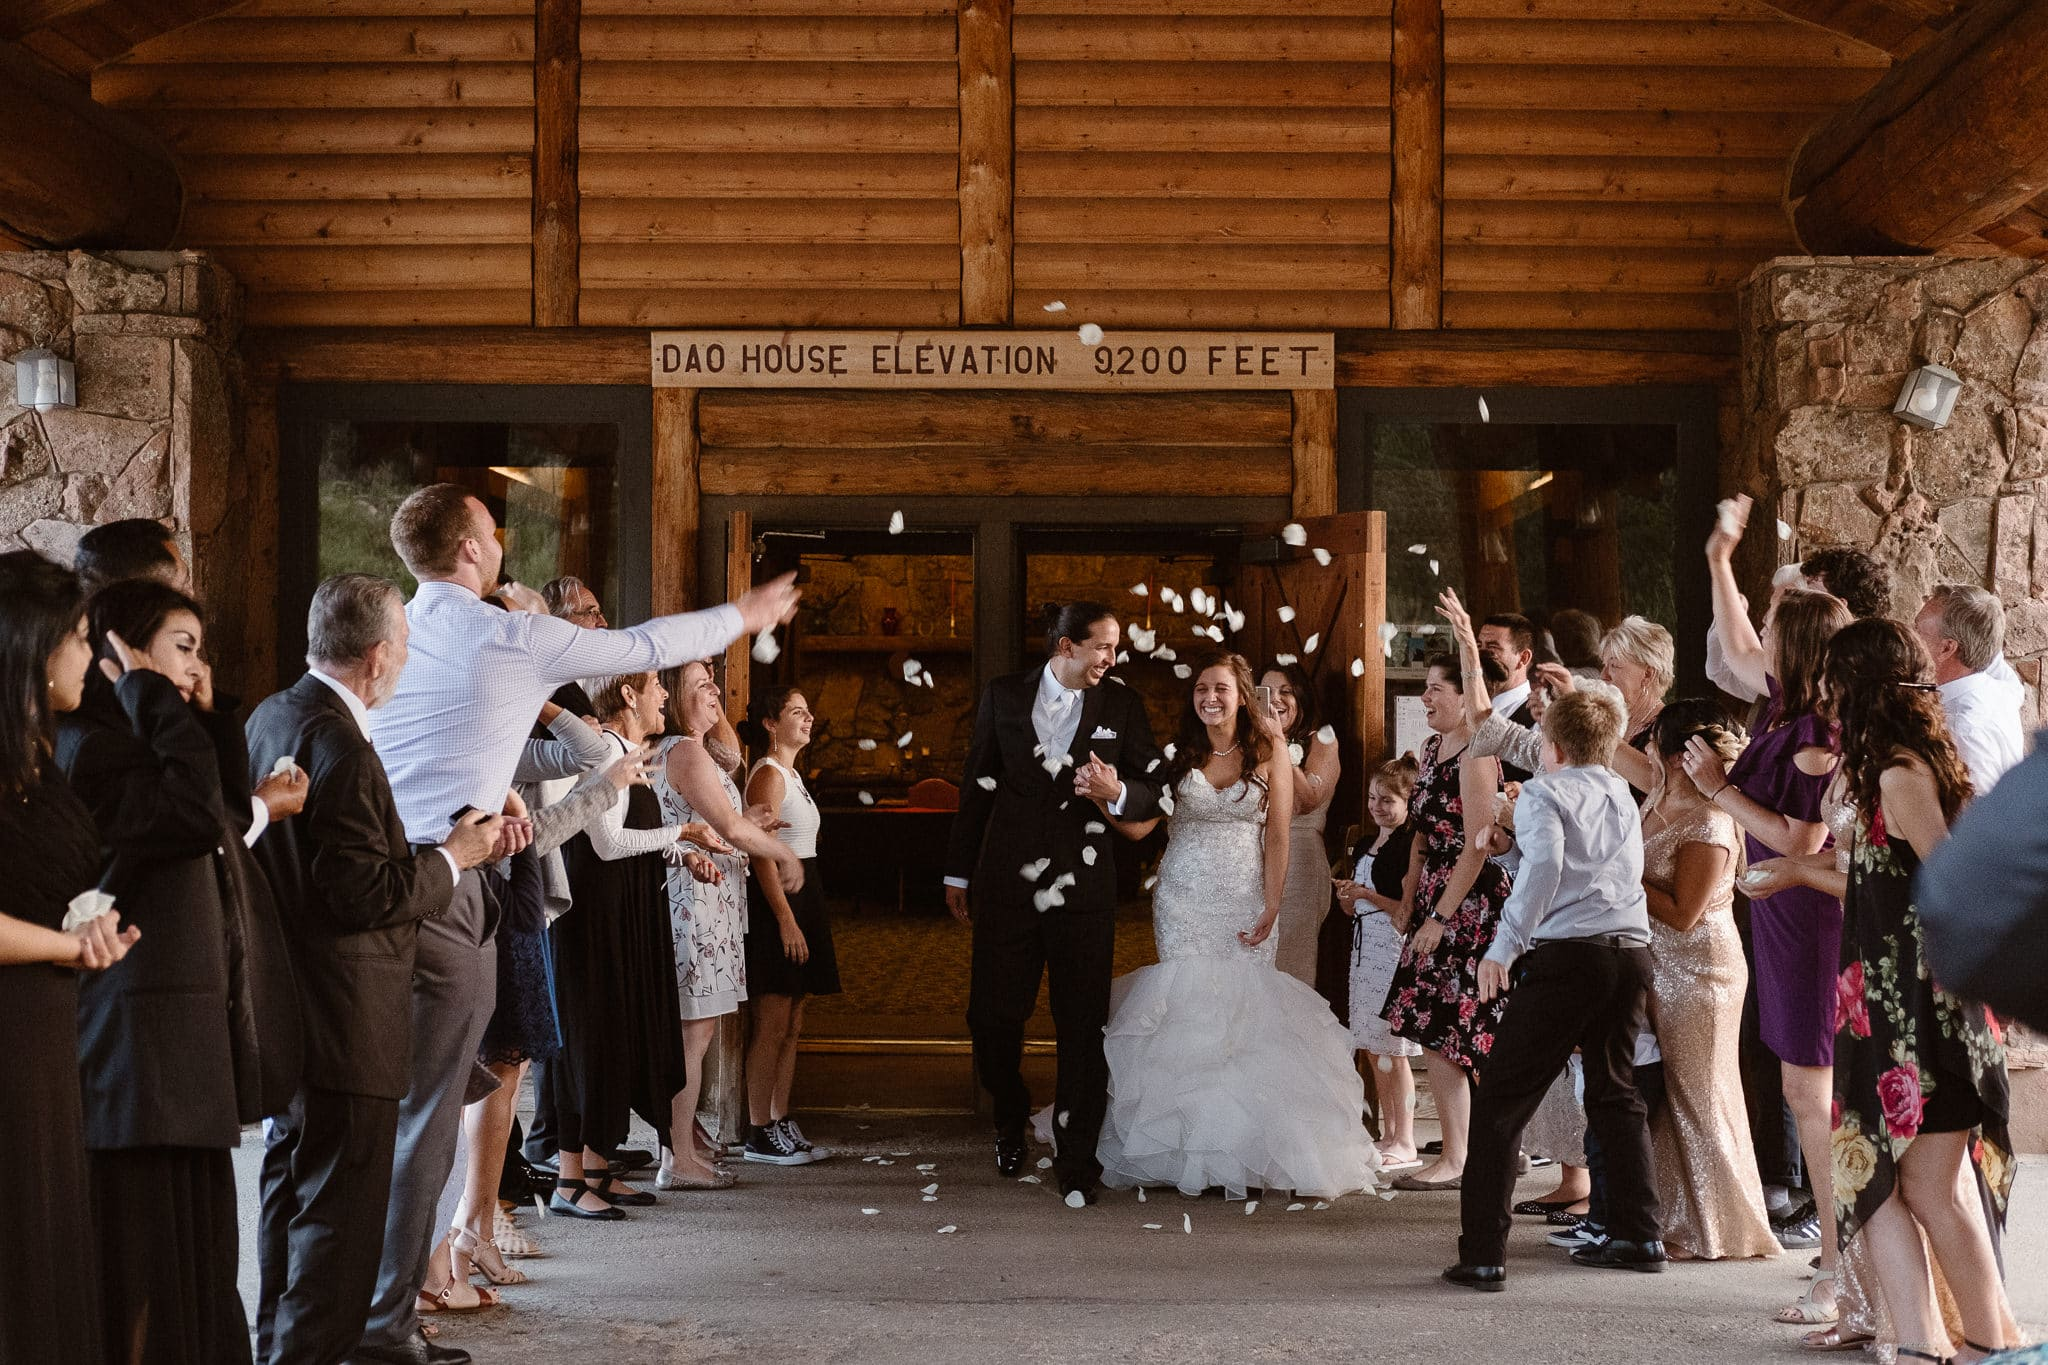 Dao House wedding photographer, Estes Park wedding venue, Colorado mountain wedding, bride and groom flower petal exit, grand exit, flower petal sendoff